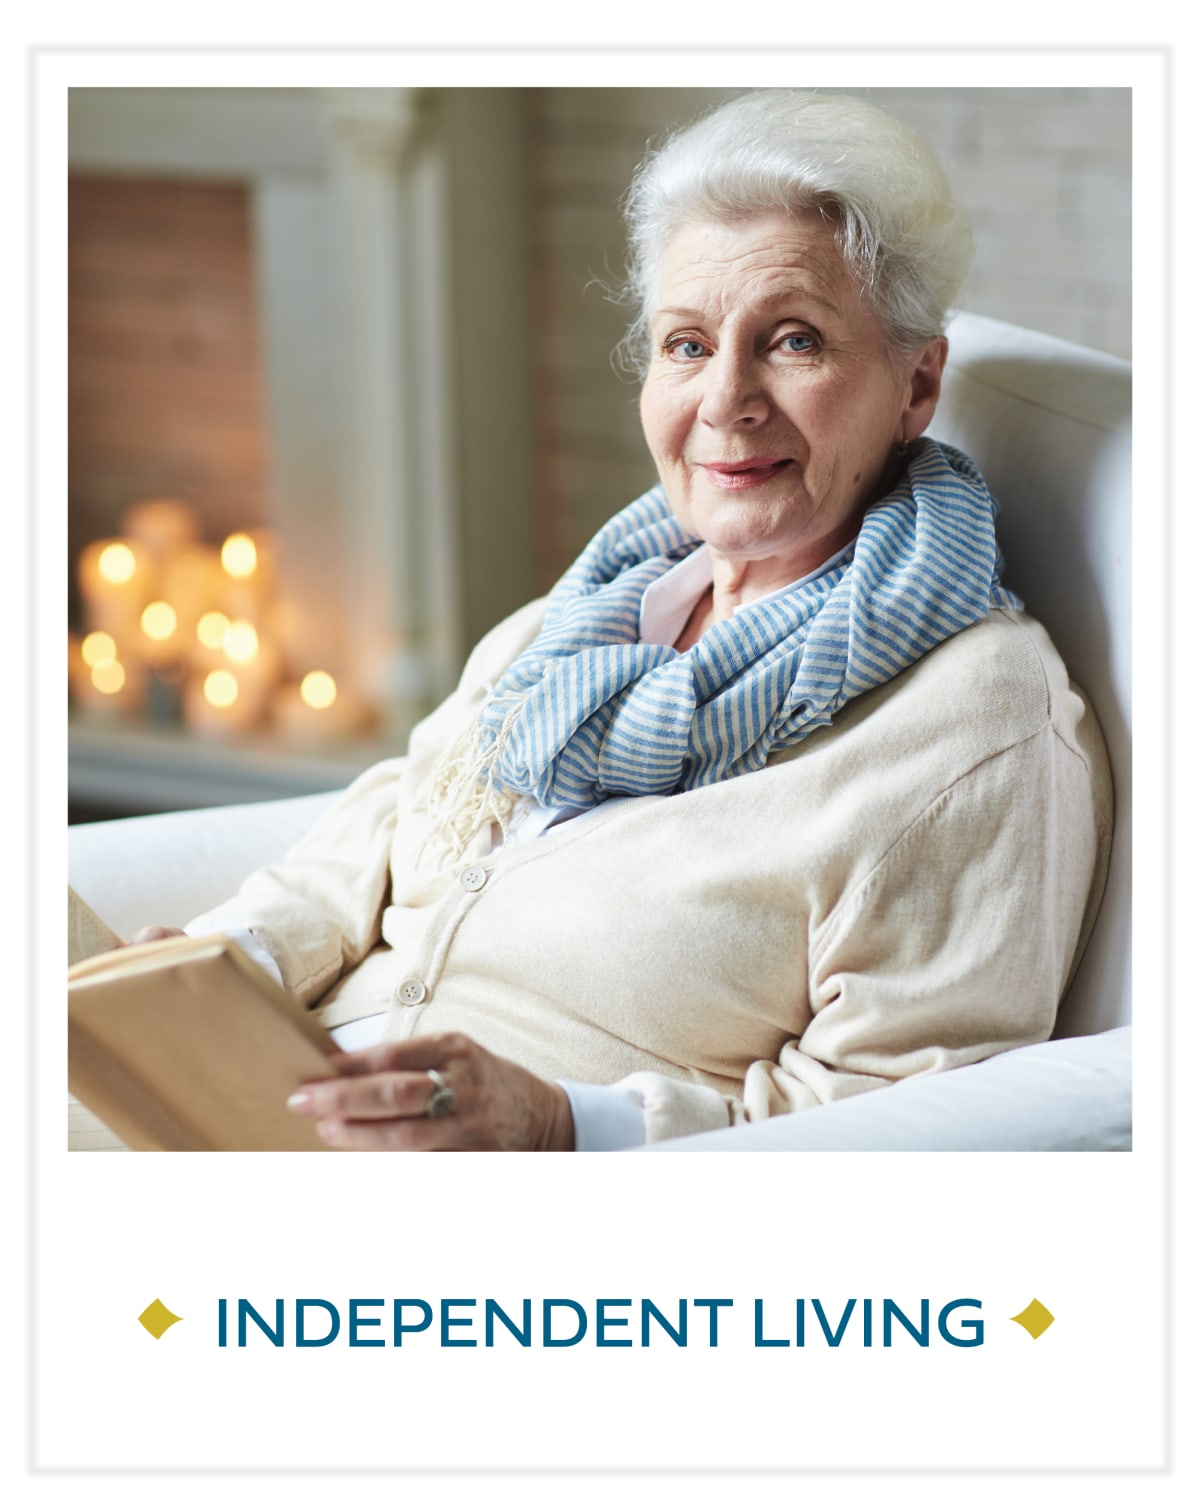 Independent Living at Broadwell Senior Living in Plymouth, Minnesota